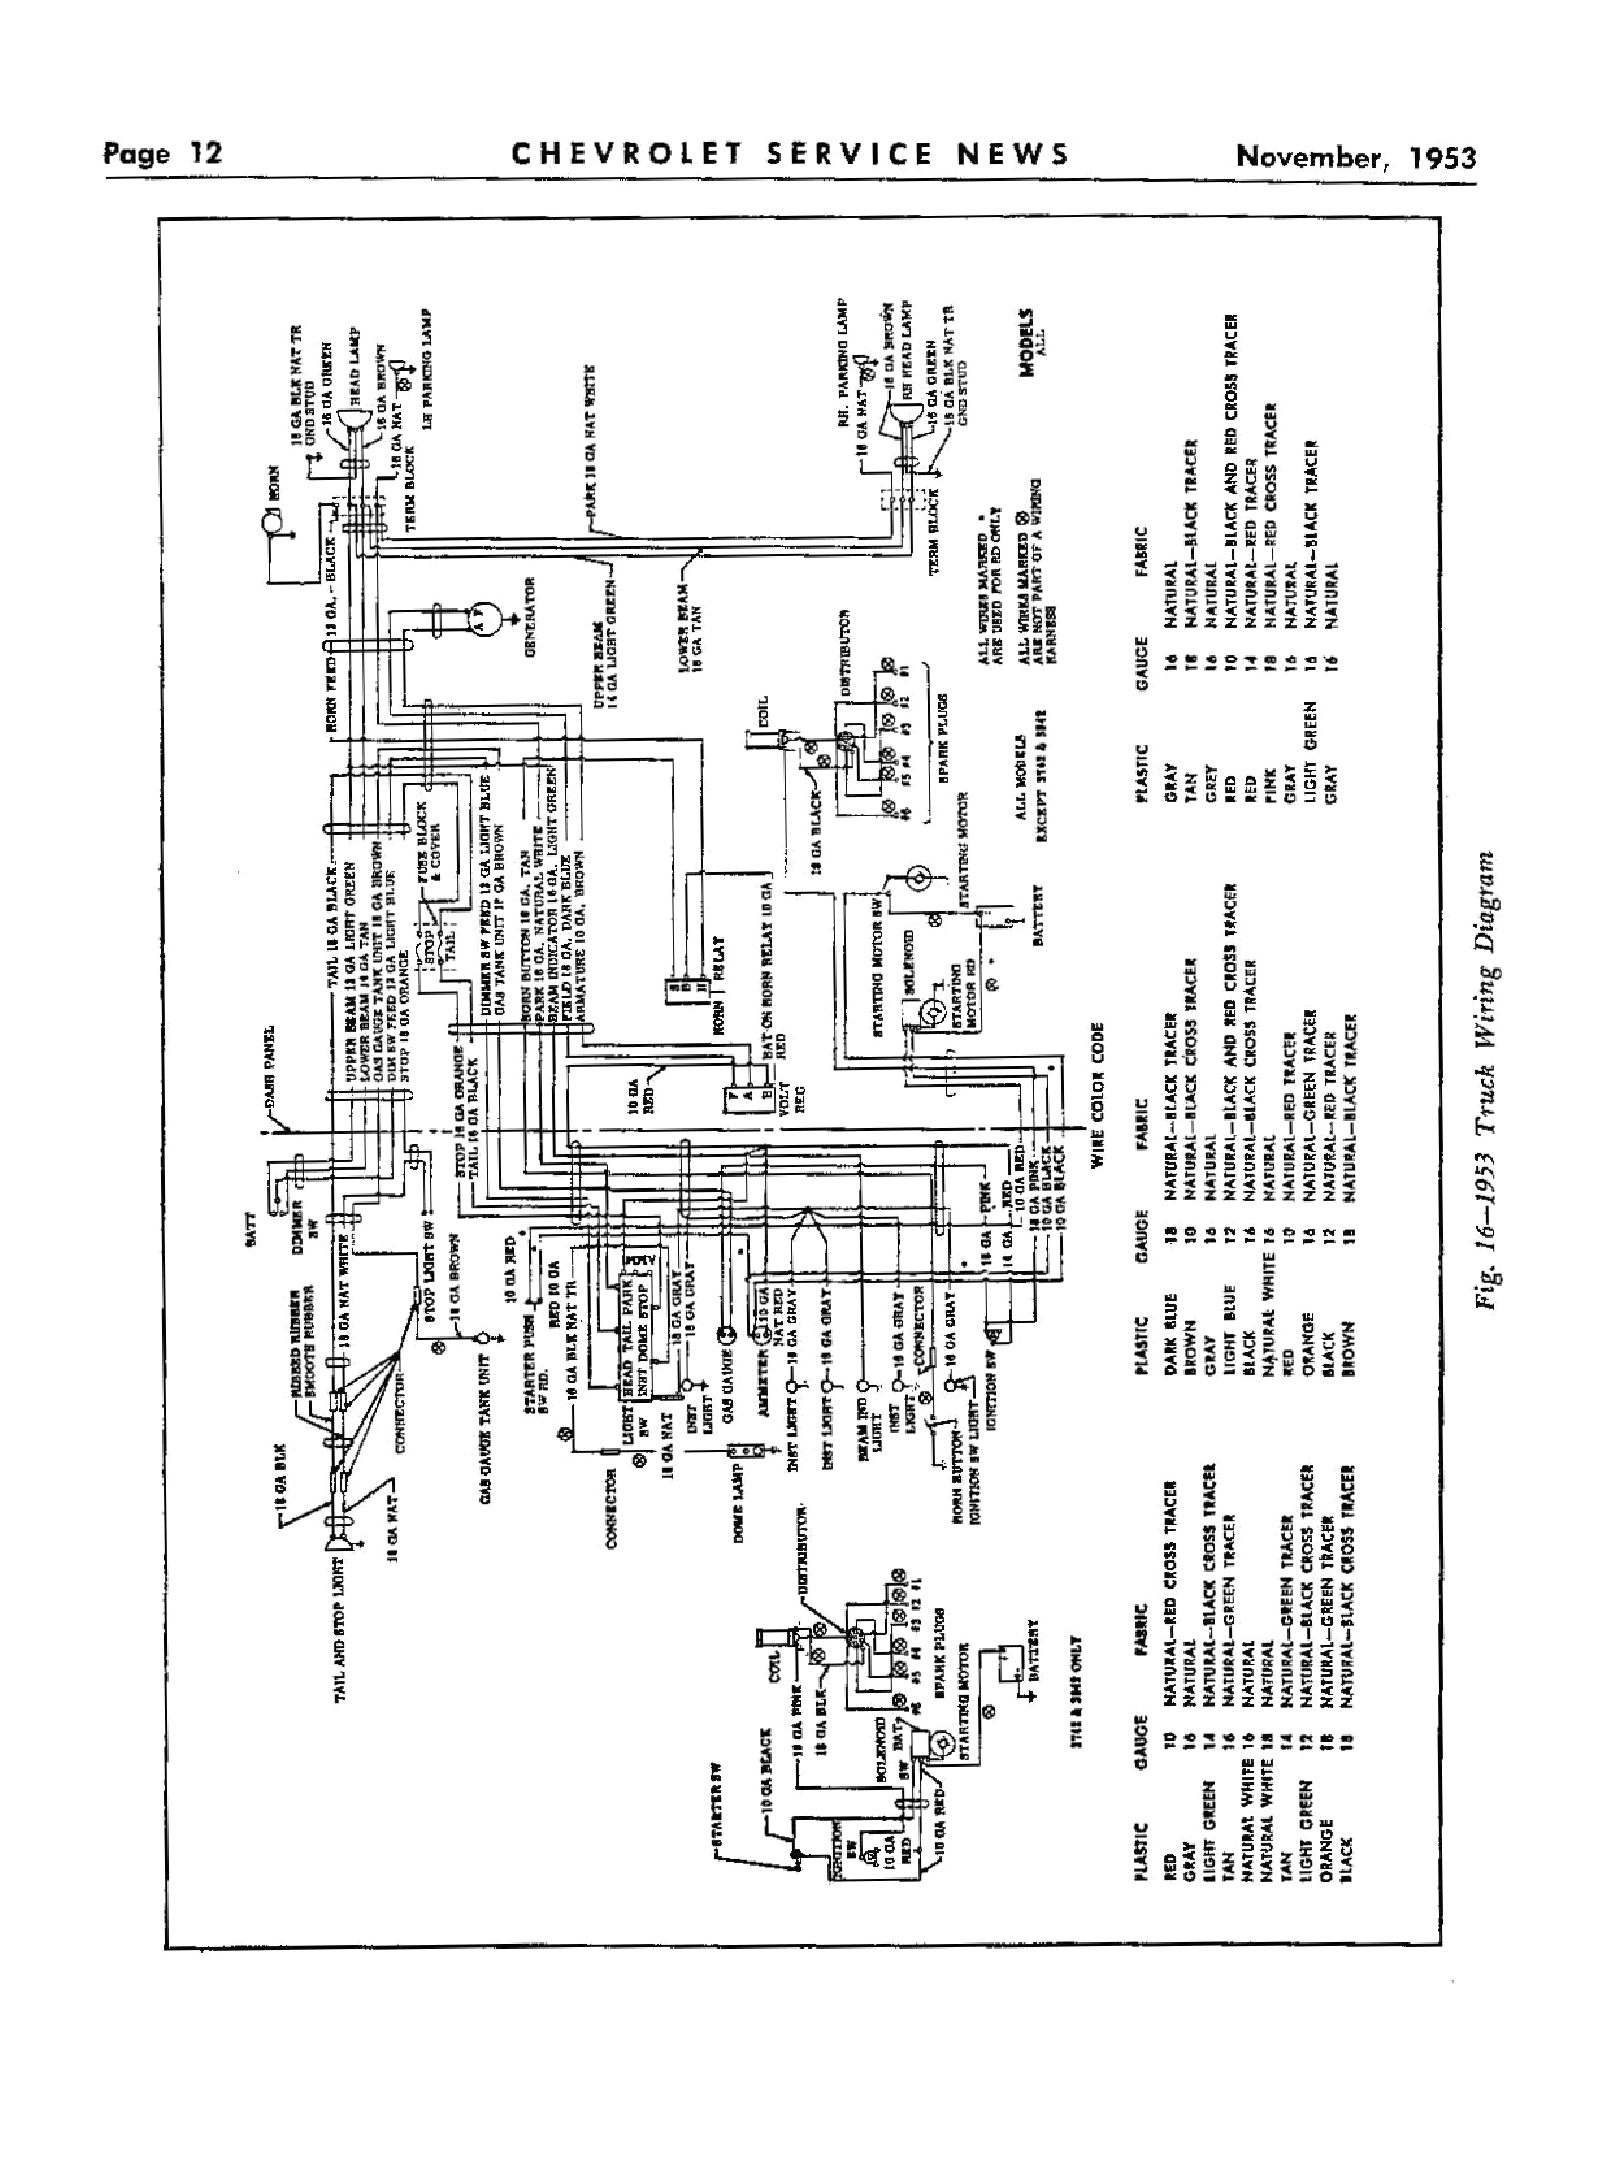 Gm Charging Schematic - DATA WIRING DIAGRAM •